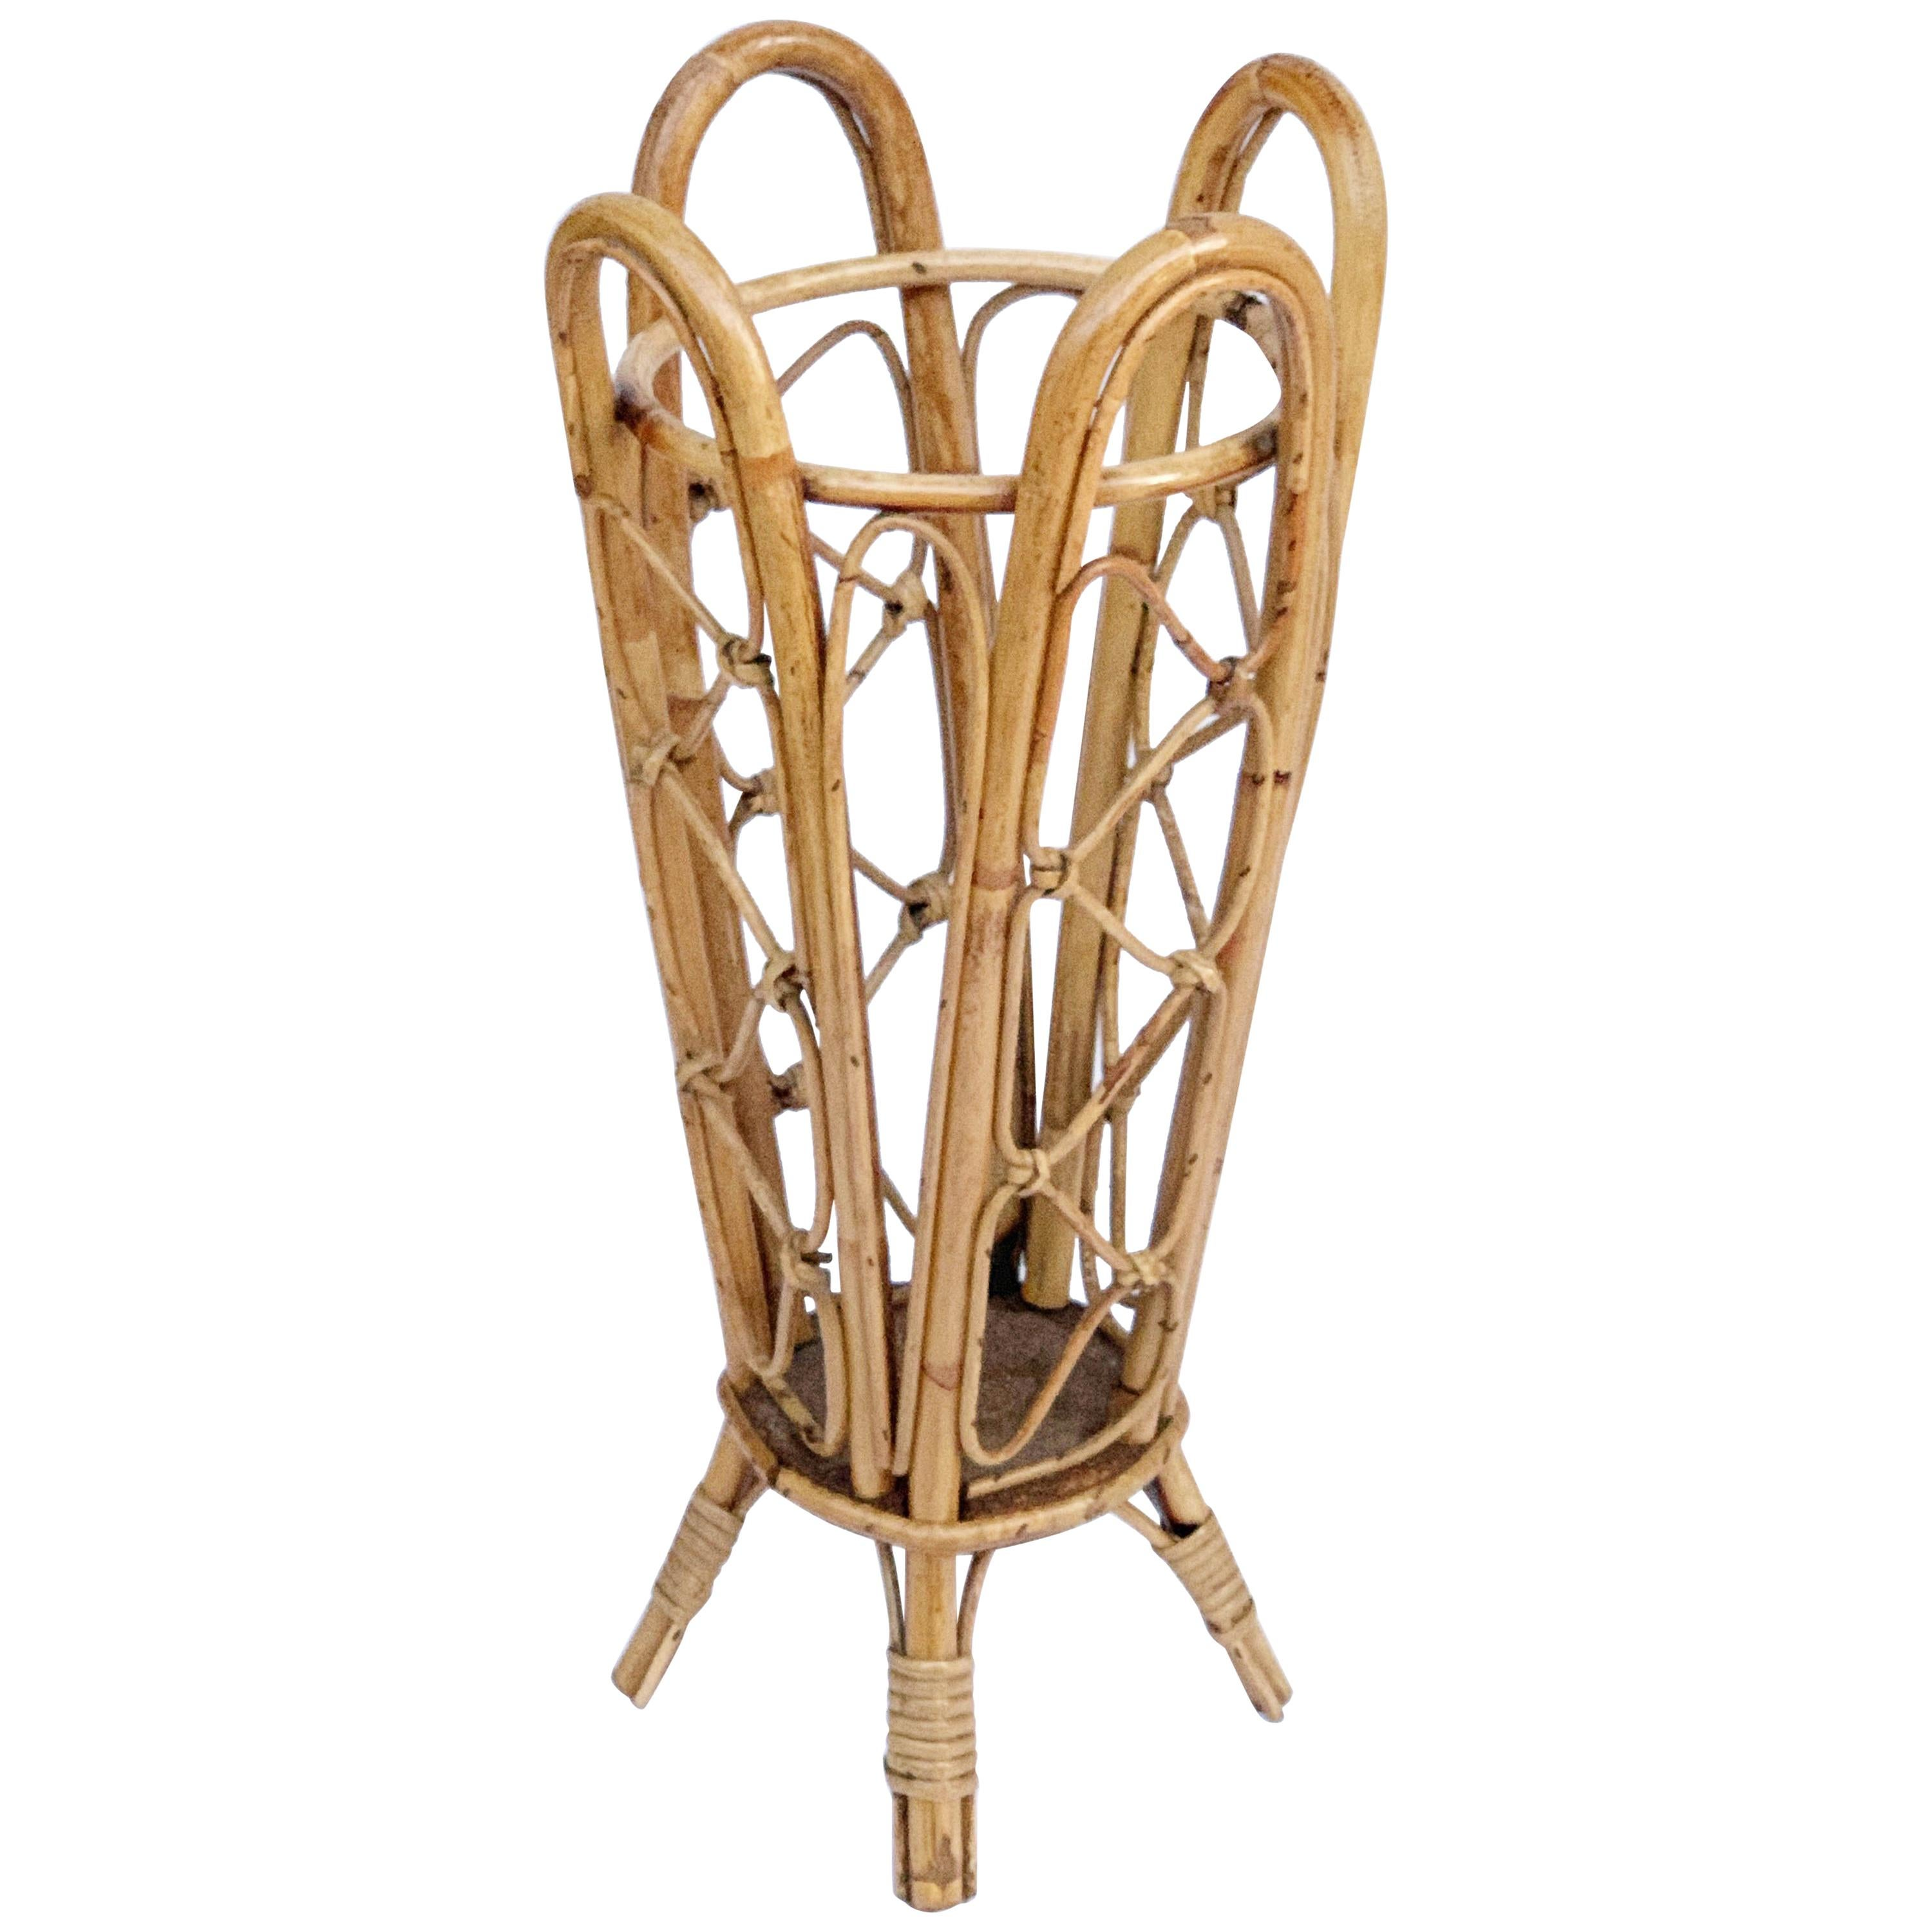 Bamboo and Wicker Umbrella Stand in the Style of Franco Albini, Italy, 1950s